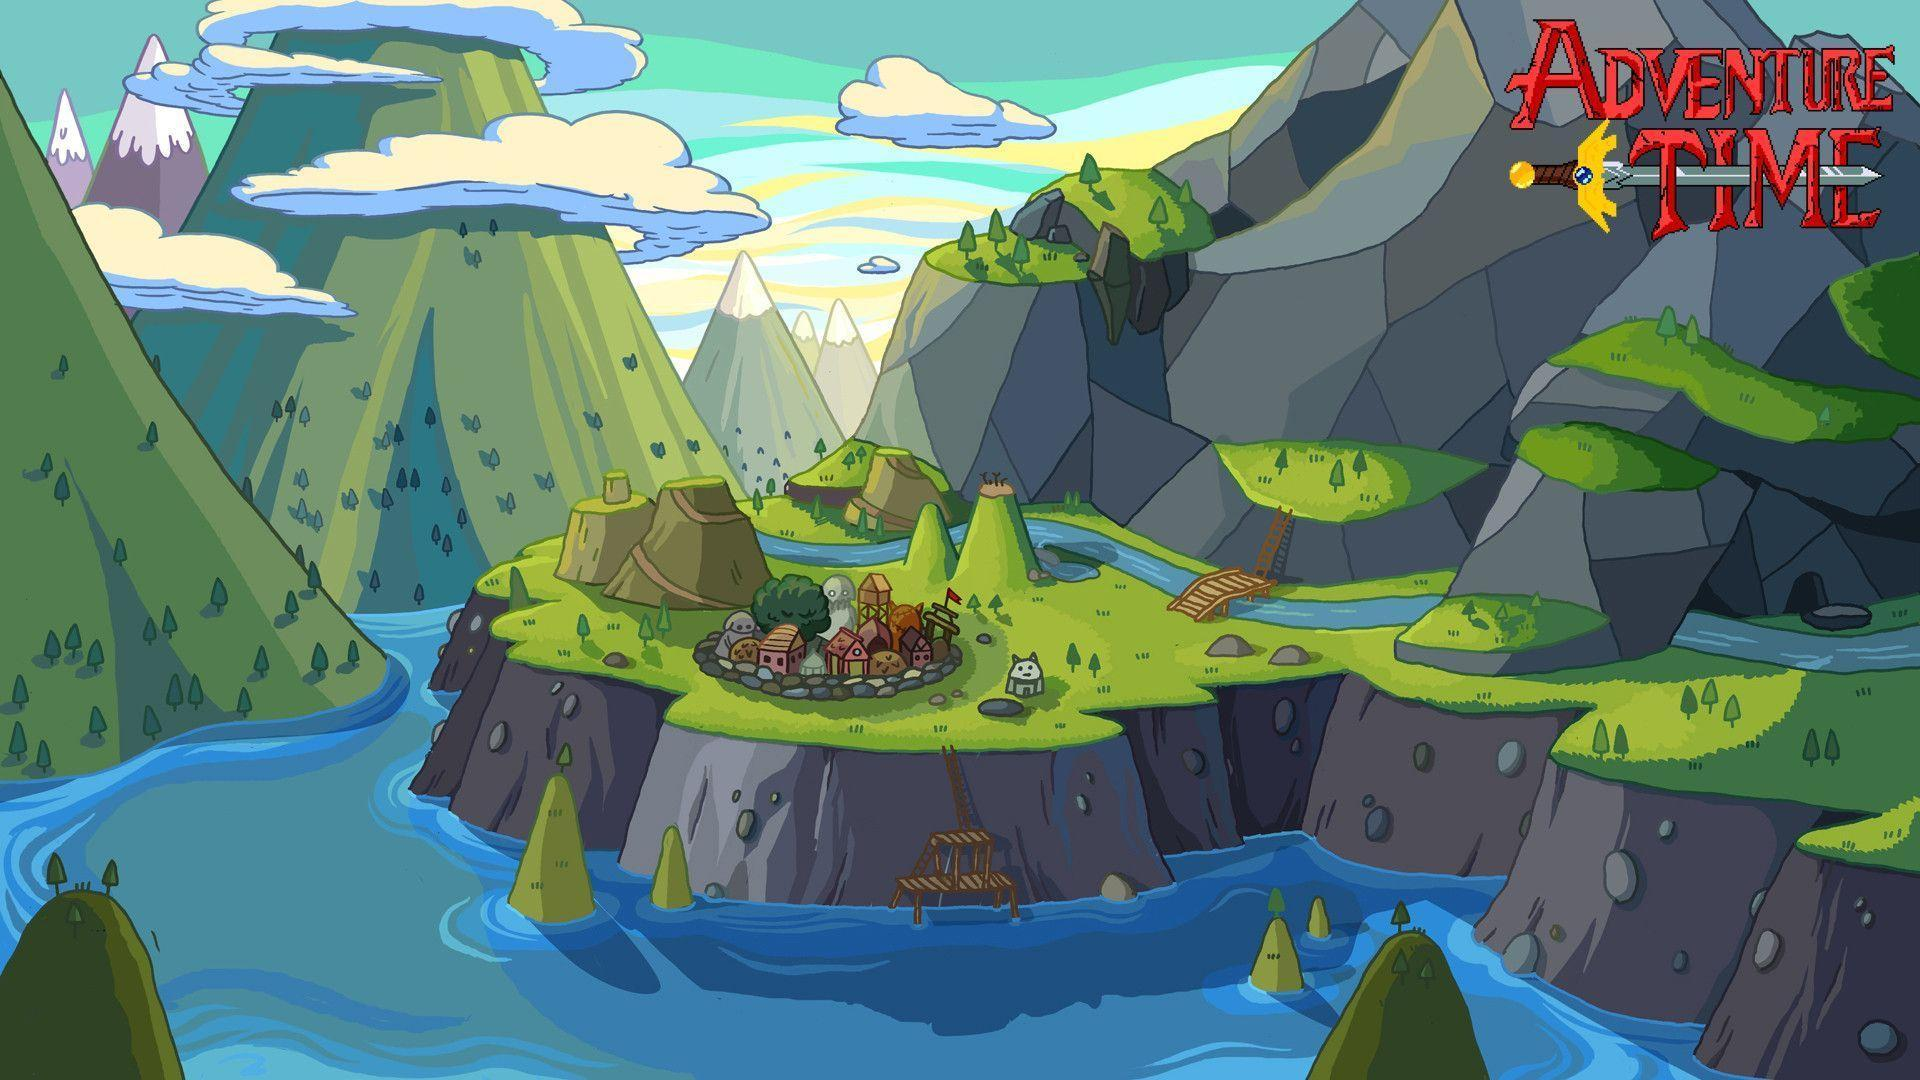 Adventure Time Wallpapers - Wallpaper Cave